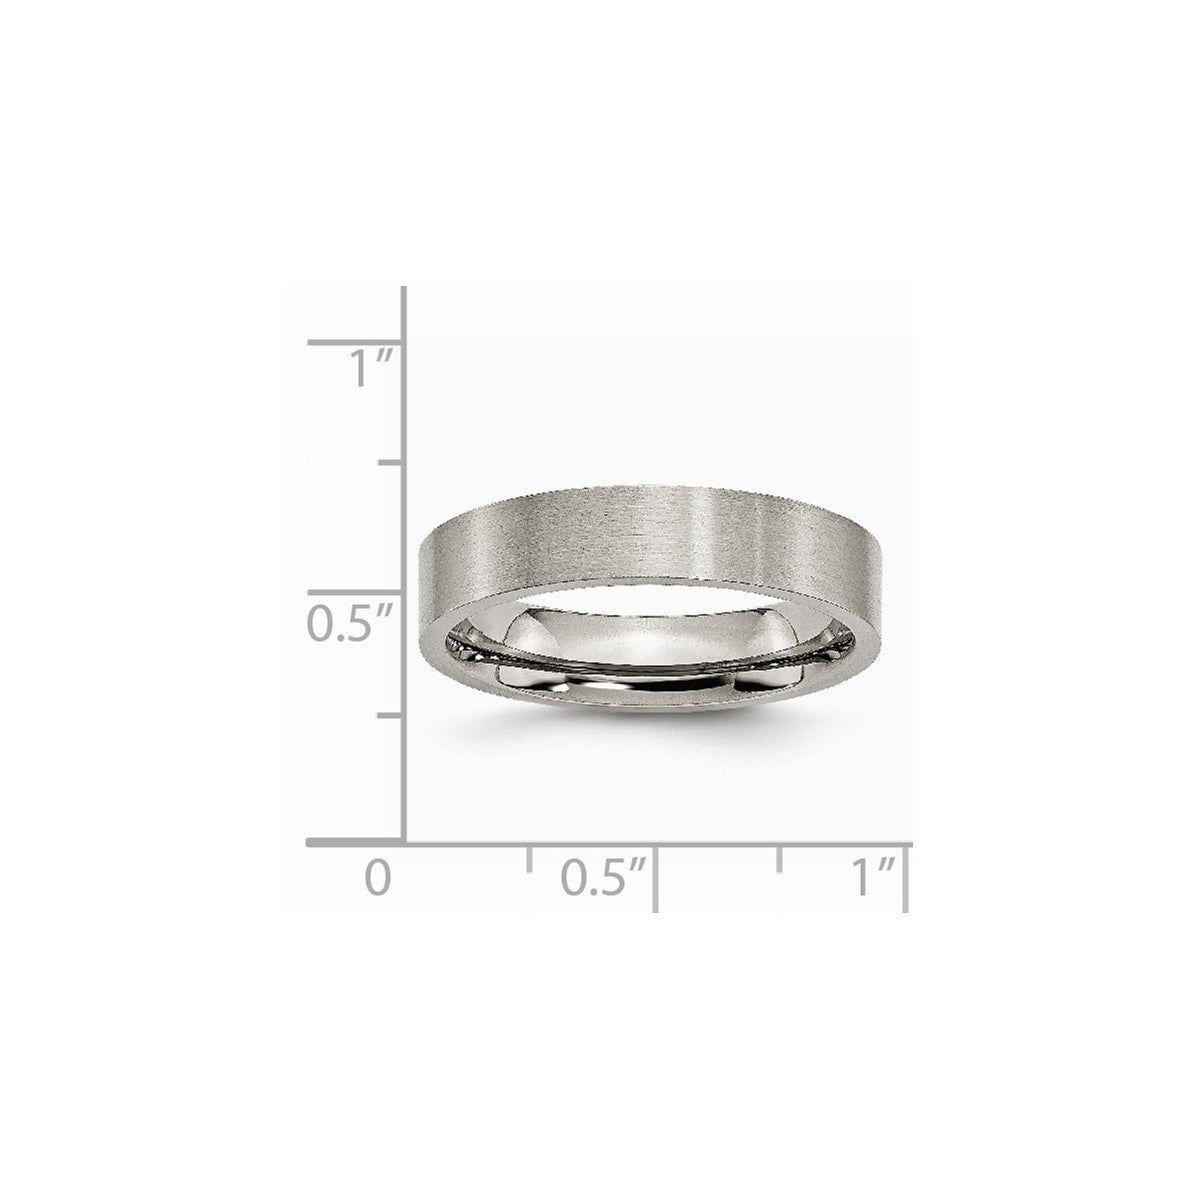 Titanium Ridged Edge 8mm Brushed Wedding Ring Band Size 7.50 Classic Flat Jewelry & Watches